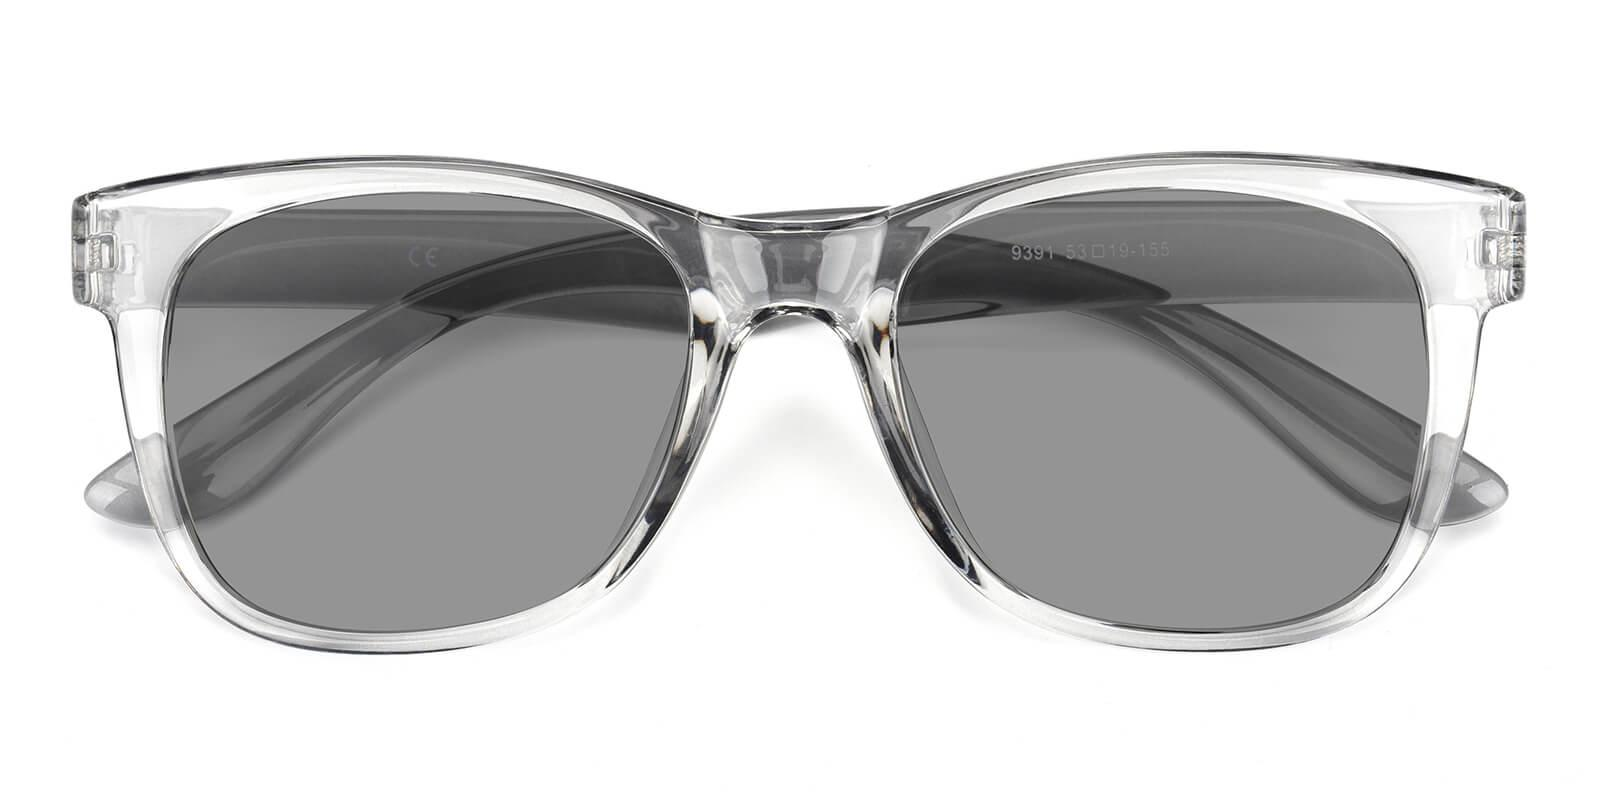 Tracly-Gray-Square / Cat-TR-Sunglasses-detail